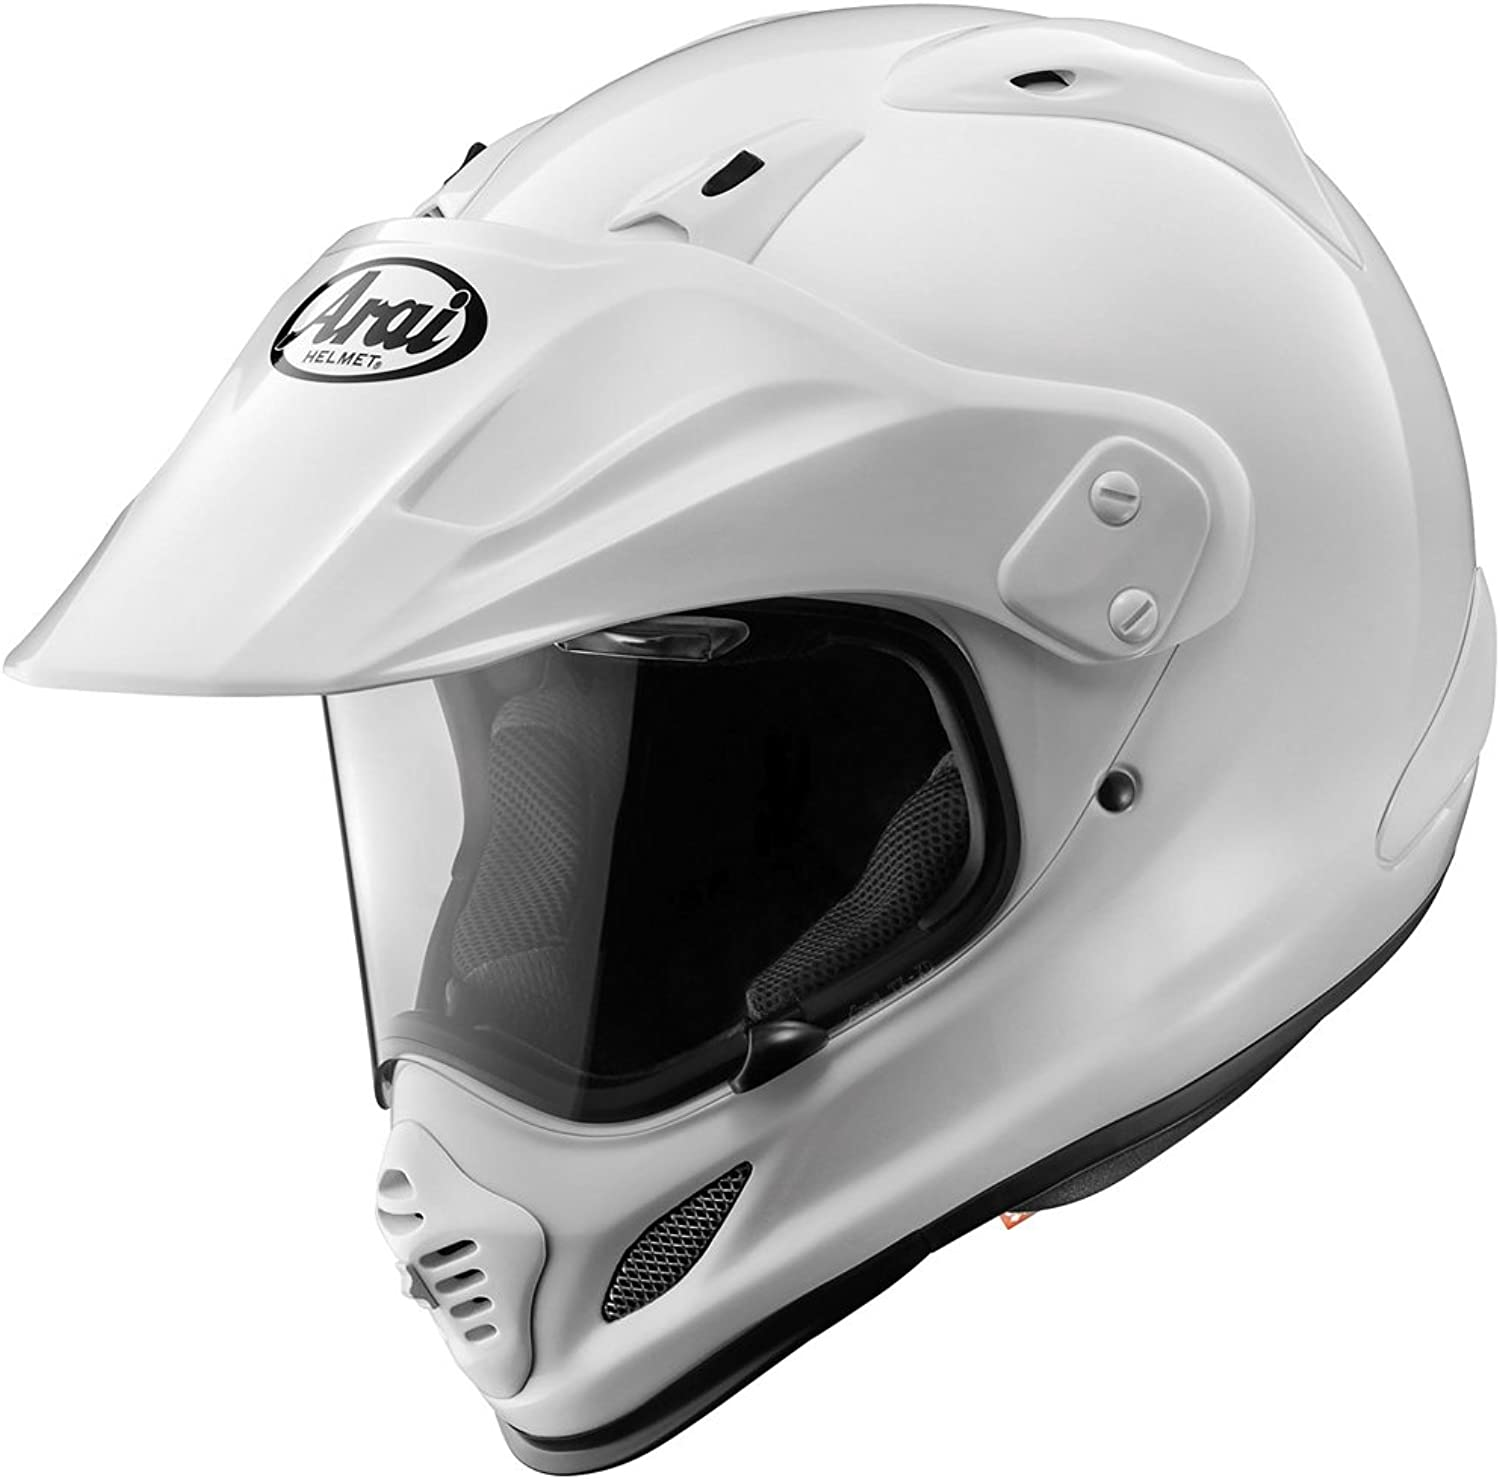 2013 Arai XD4 Motorcycle Helmets  White  Medium